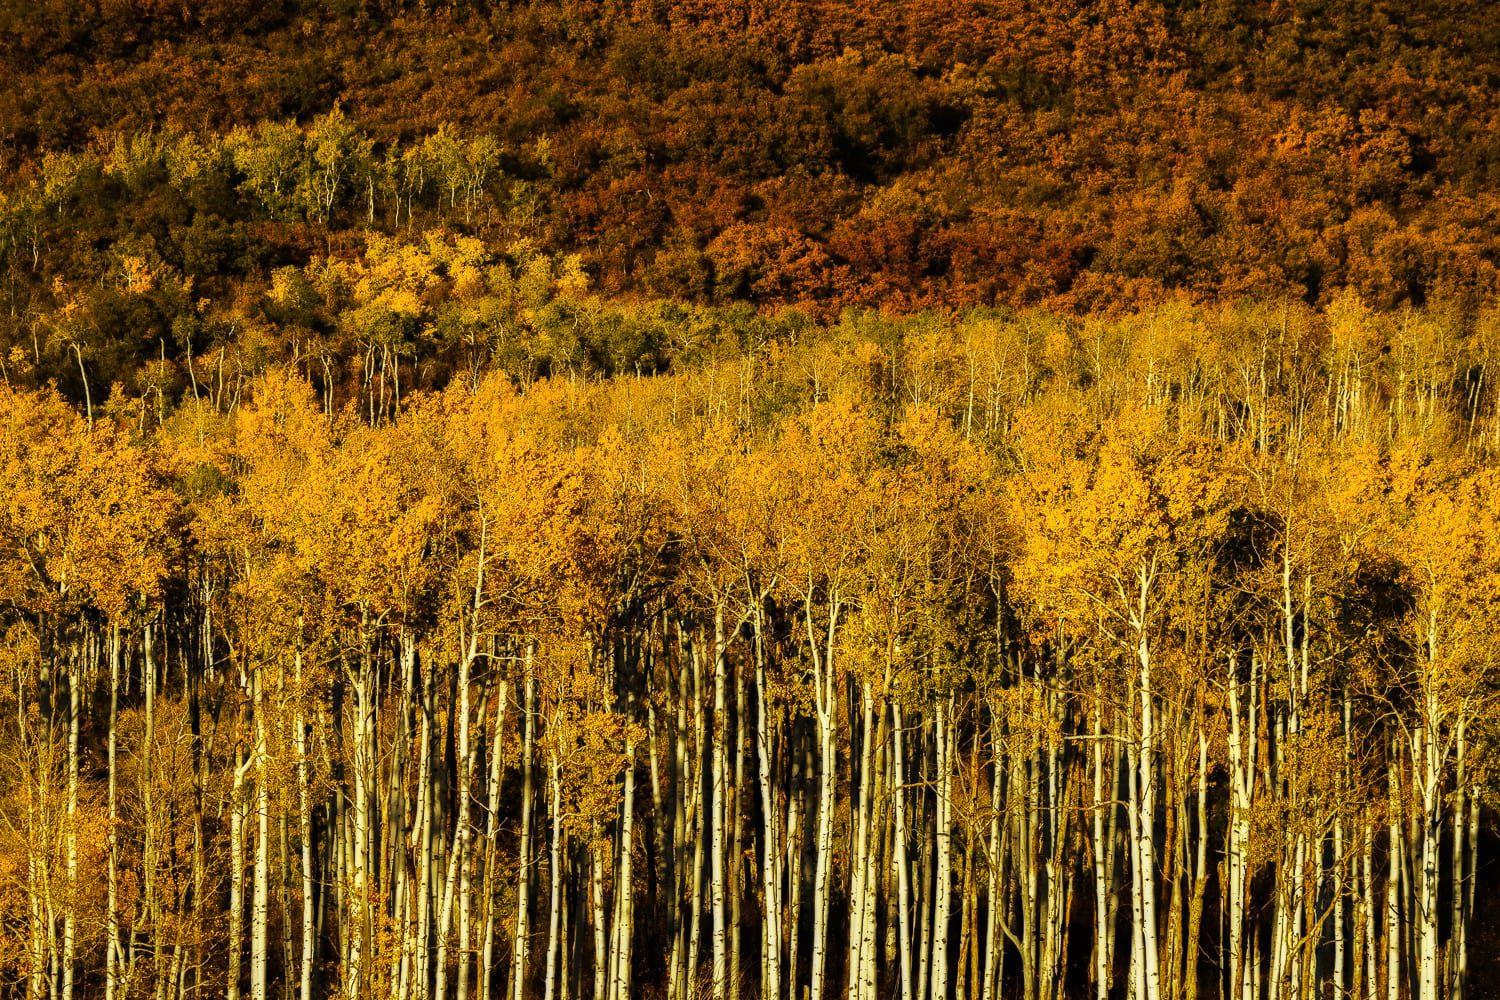 Rust brush and yellow aspens scene